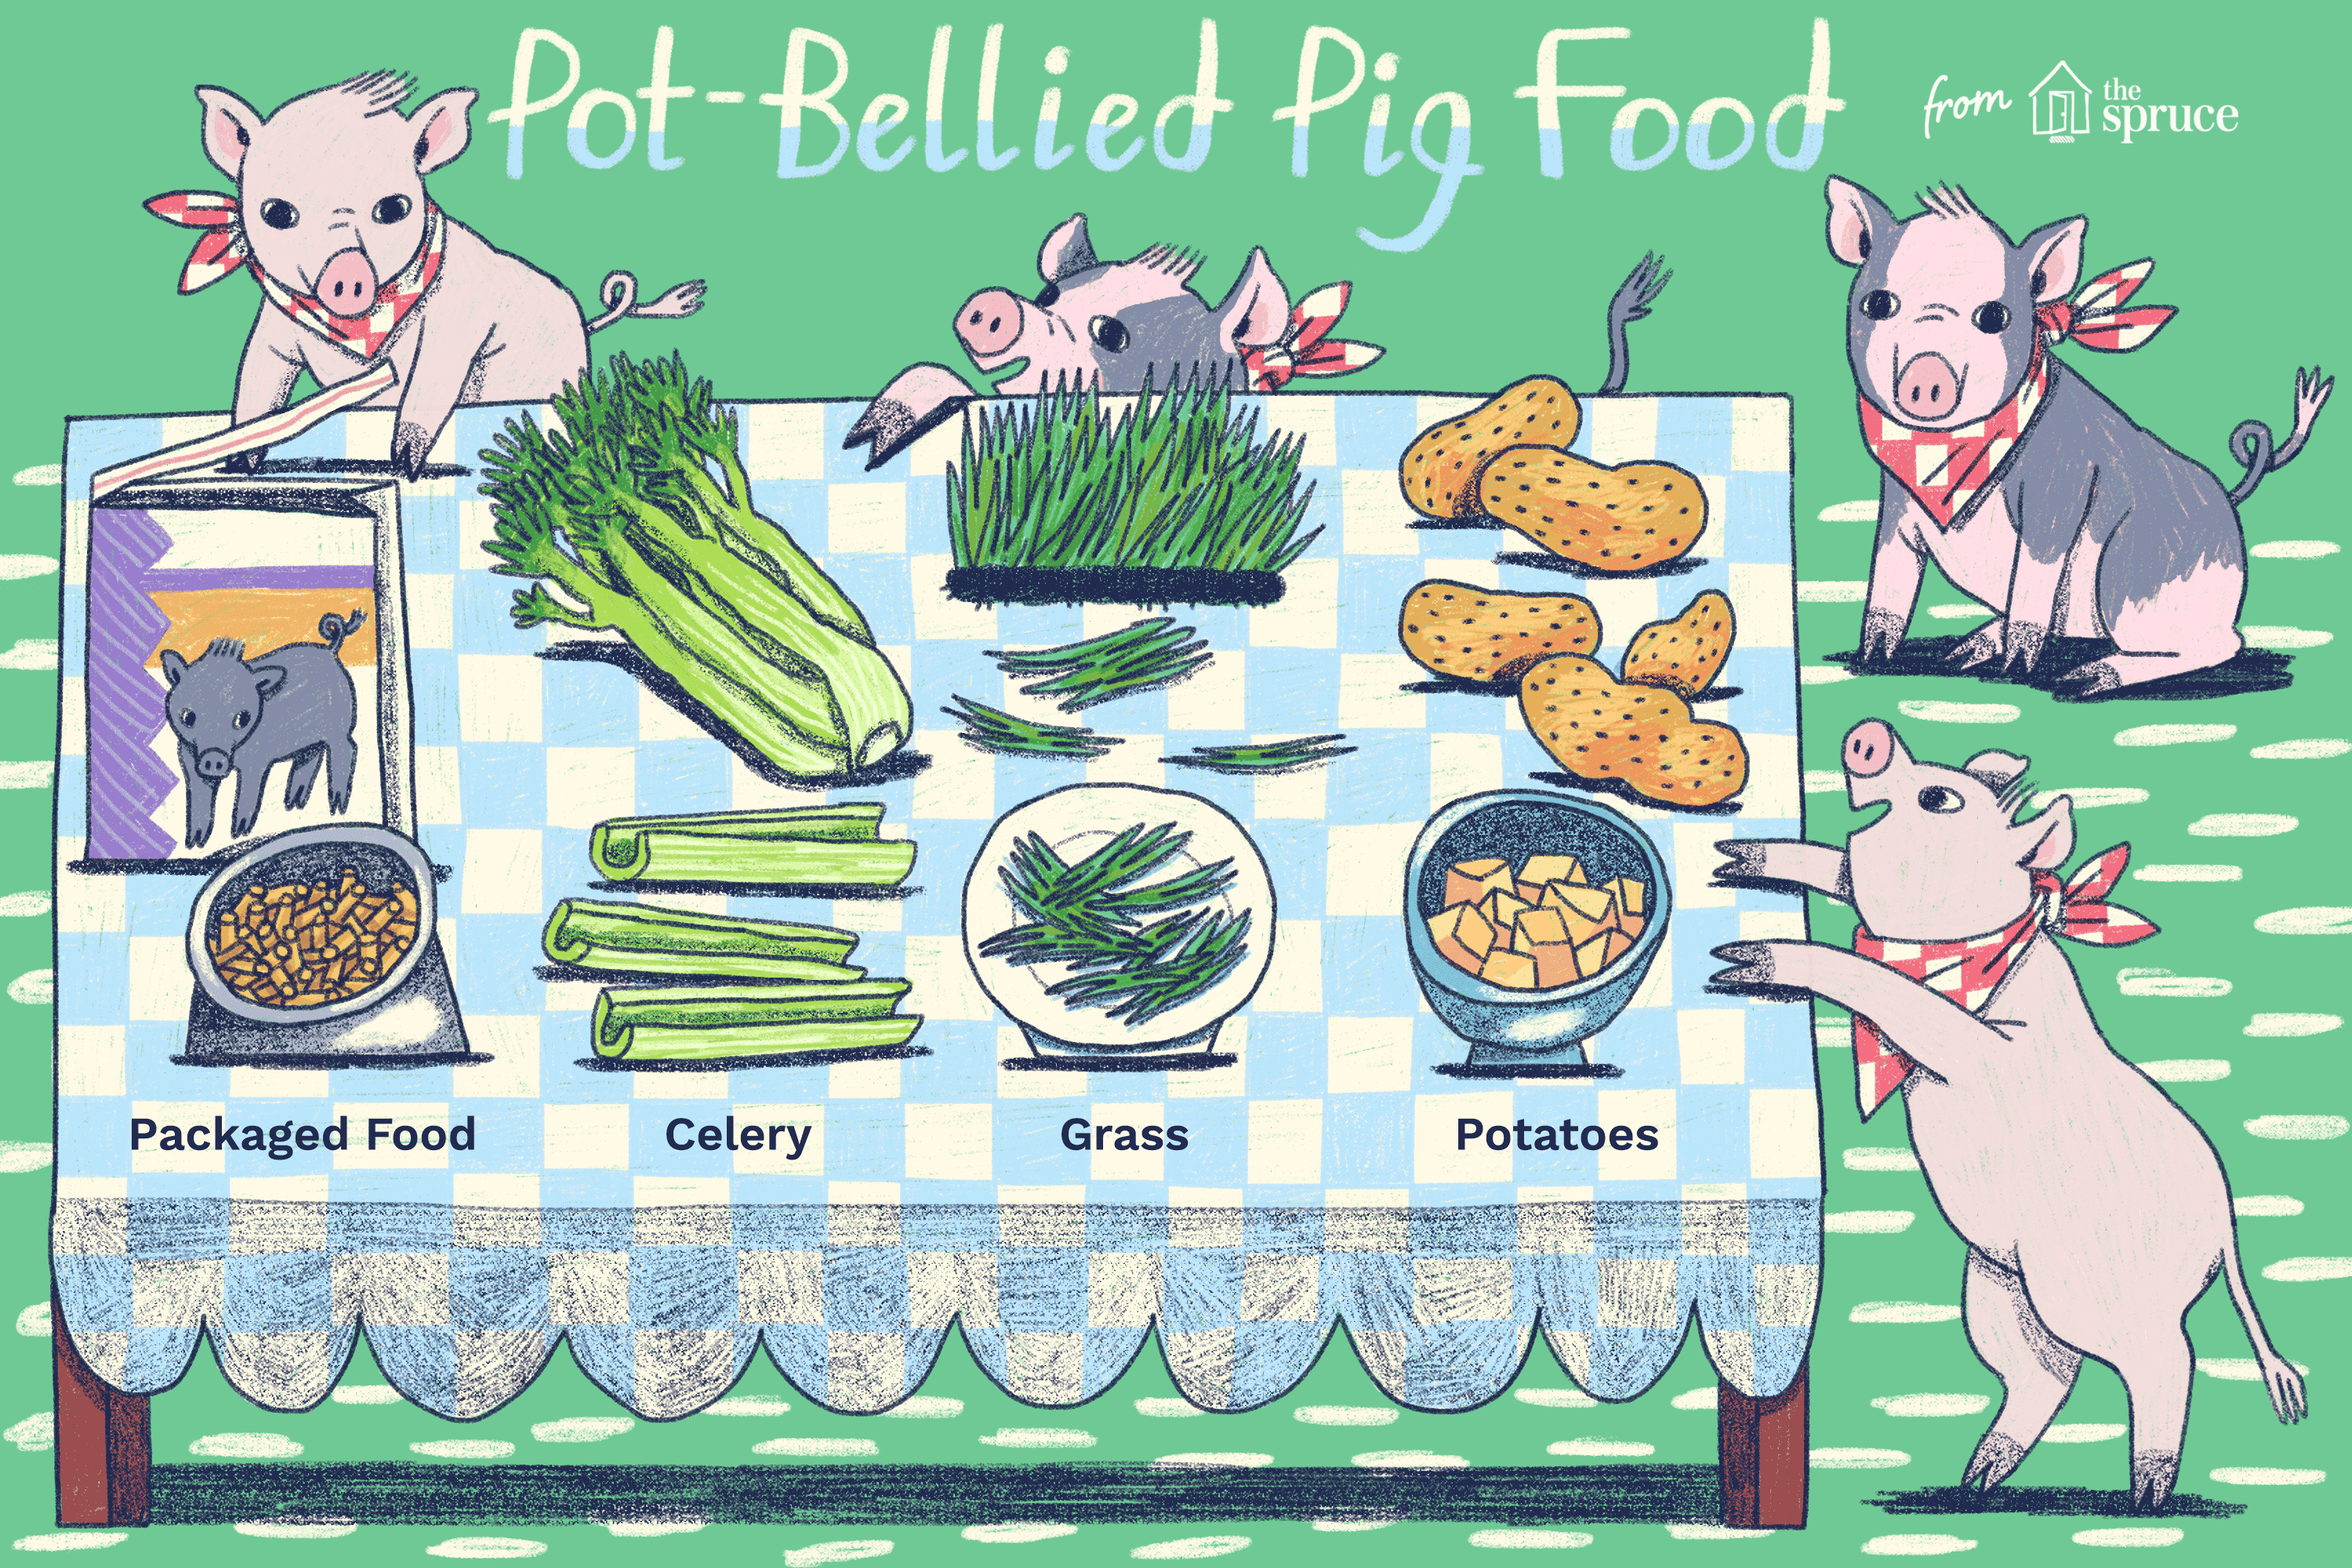 What Do Pot-Bellied Pigs Eat?